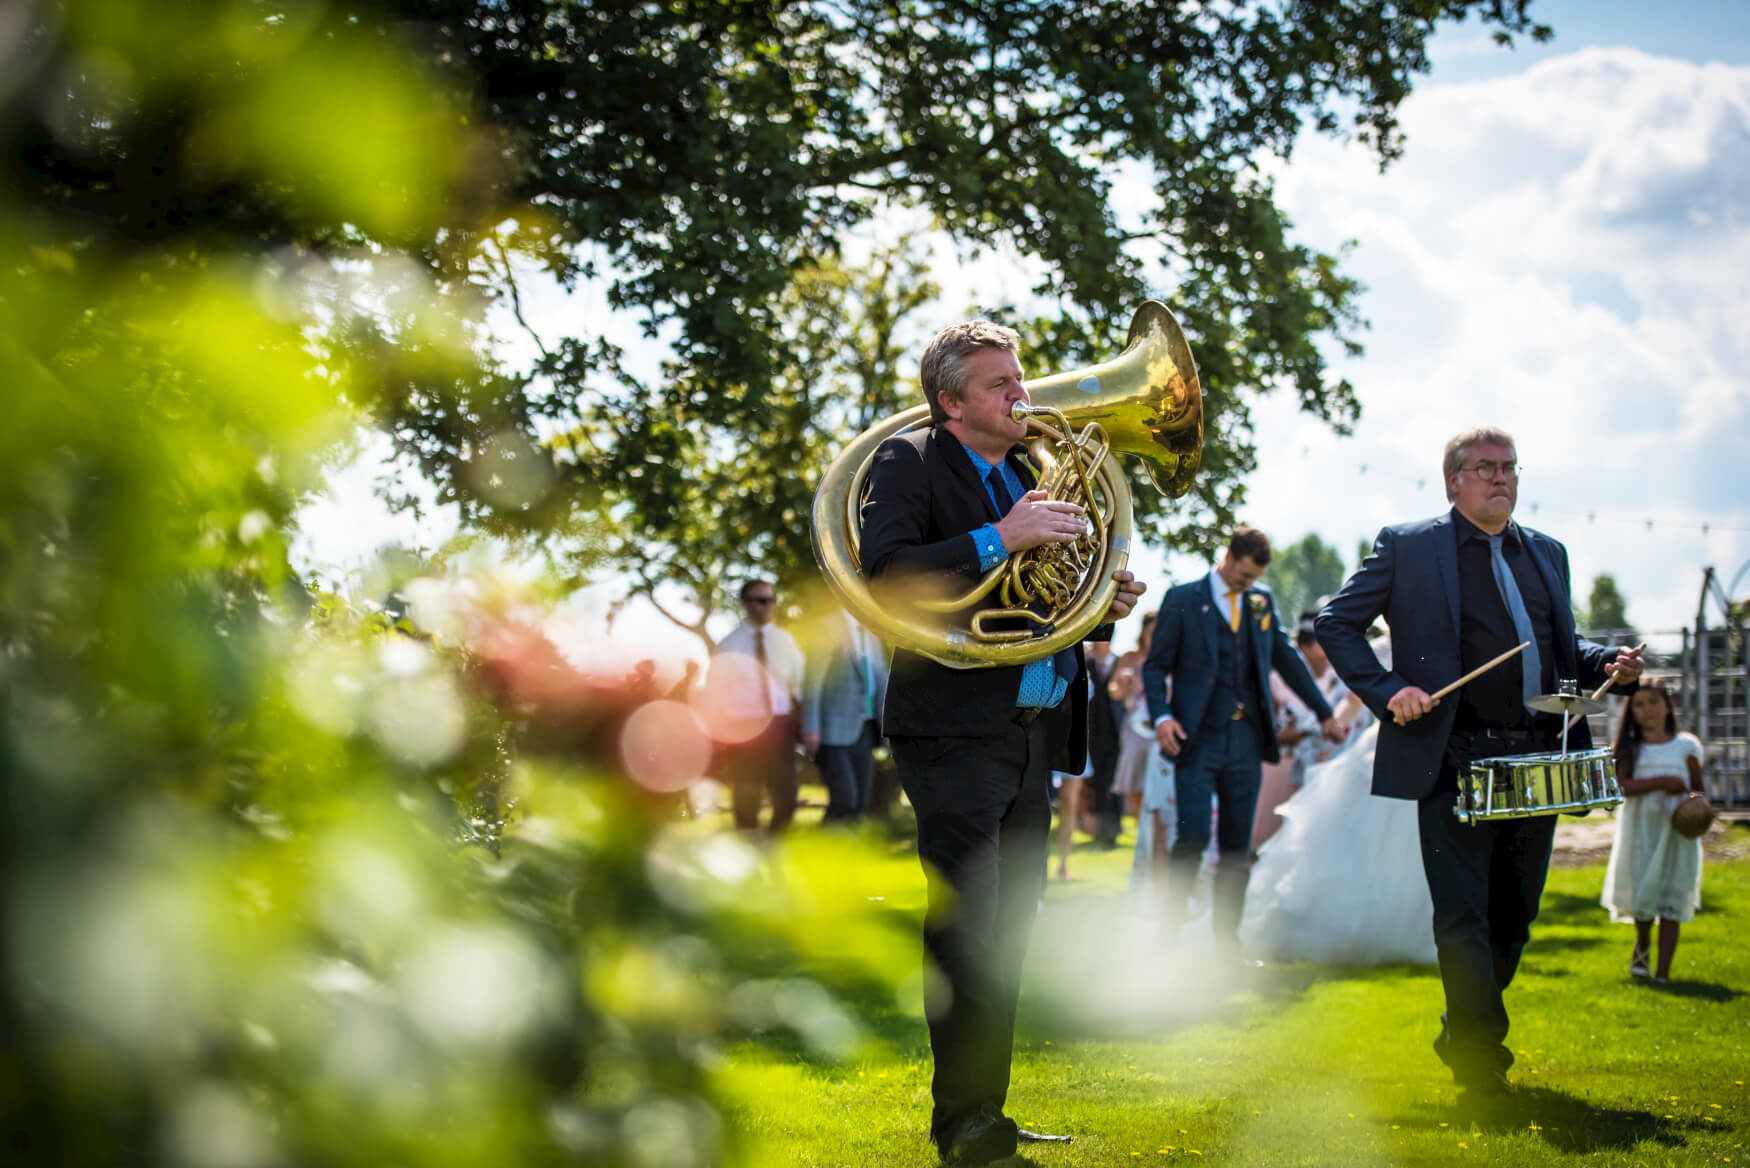 brassjunkies-sousaphone-drums-groom-happy-TheOakGroveWeddingPhotography-249.jpg